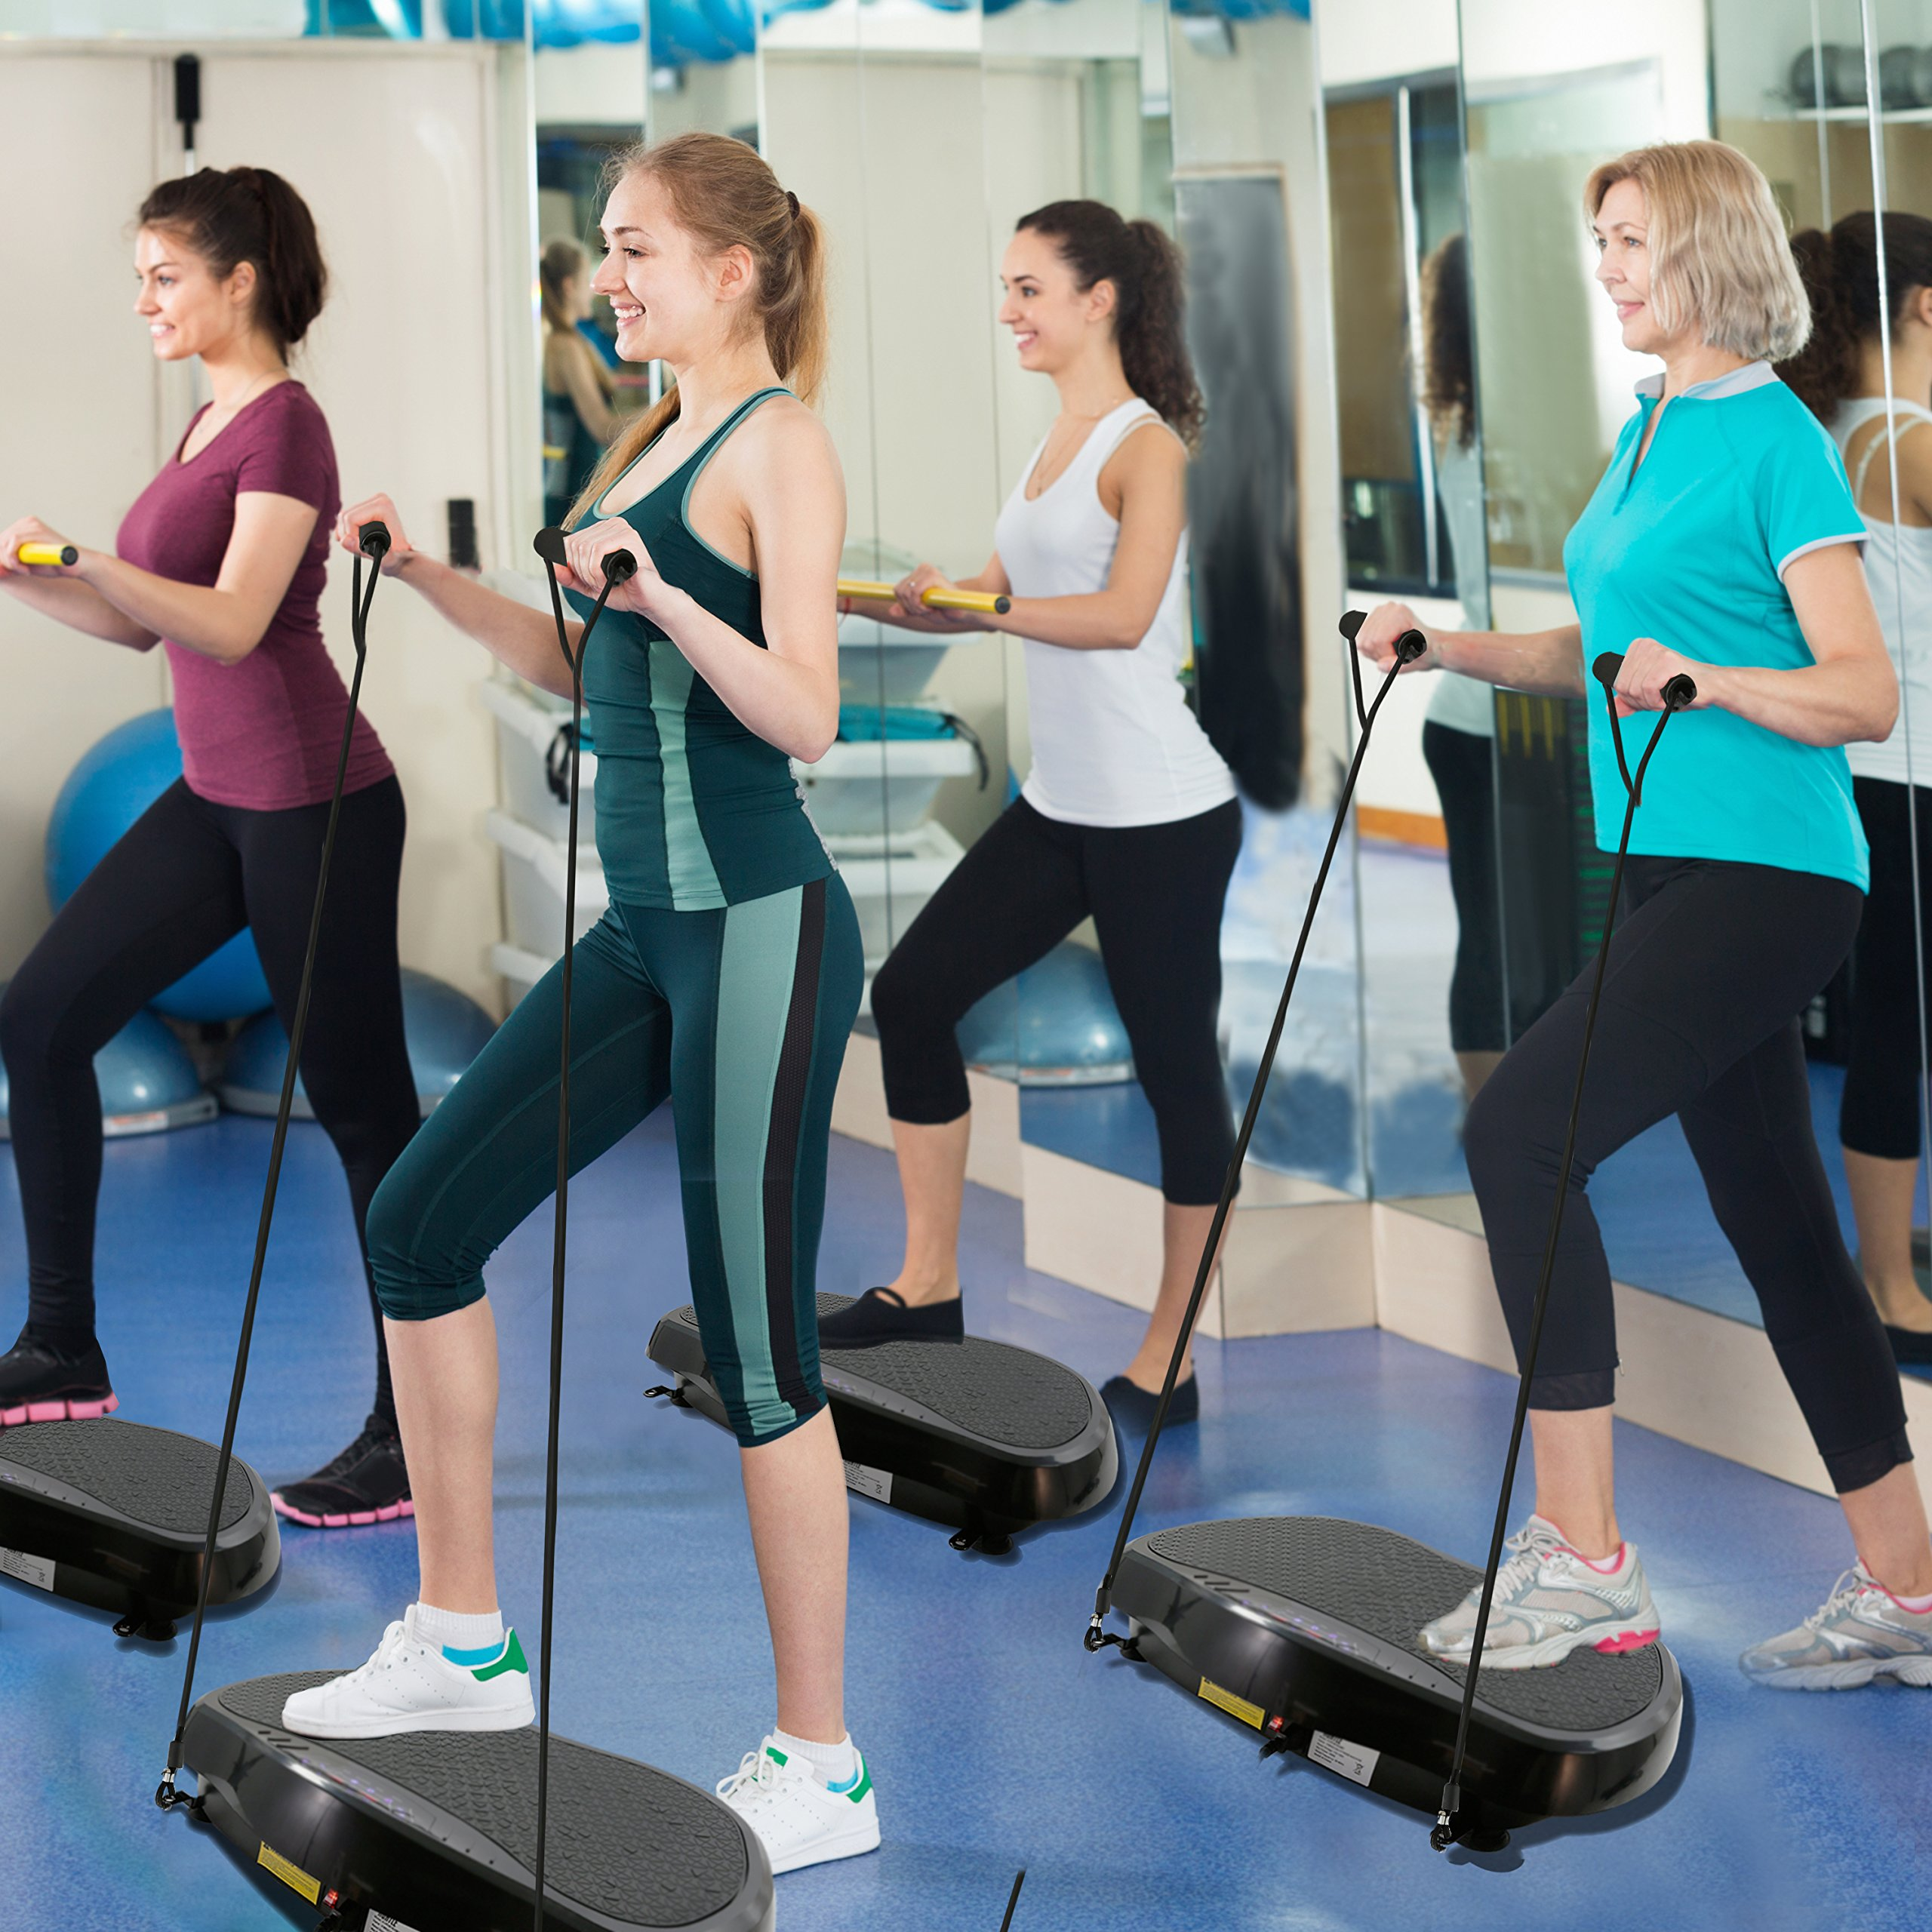 Hurtle Crazy Fit Vibration Fitness Machine - Anti-Slip Vibrating Platform Exercise & Workout Trainer, with Built-in Bluetooth Speakers, Ideal for All Body Types & Age Groups. (HURVBTR35BT) by Hurtle (Image #8)